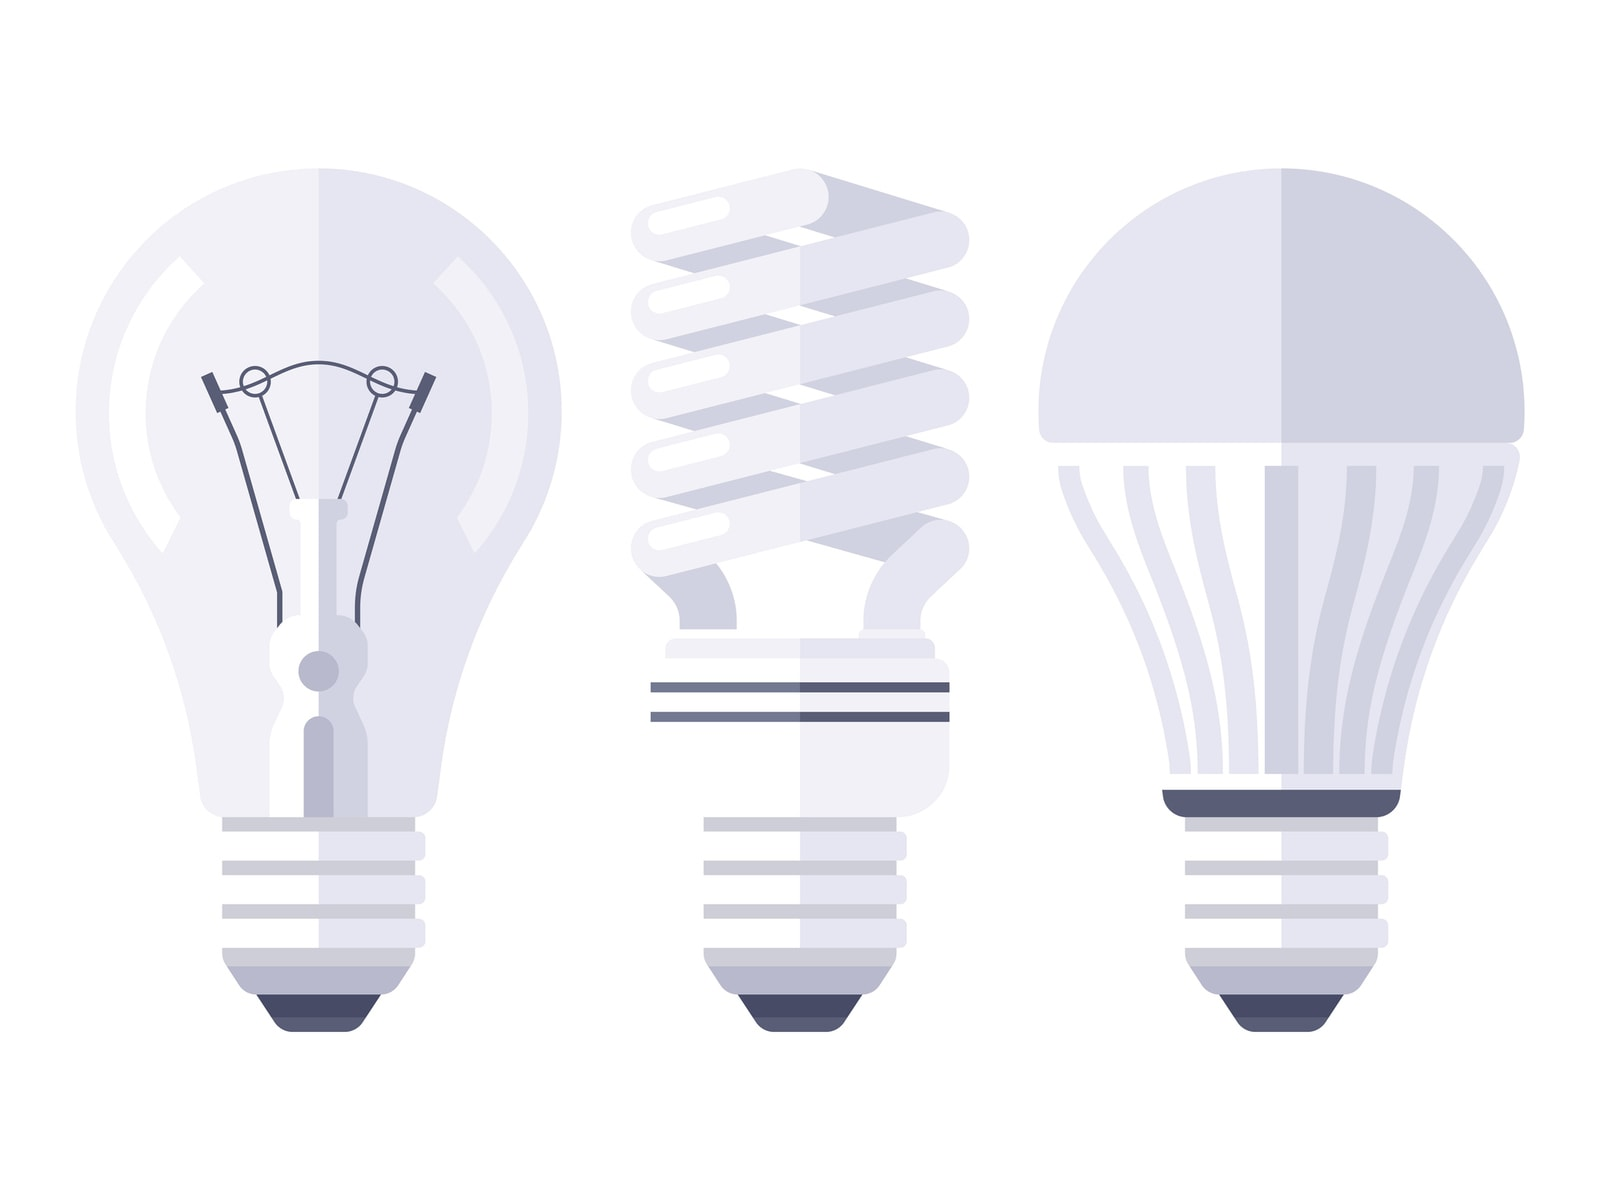 Light Bulb Types For Recessed Lighting The Recessed Lighting Blog